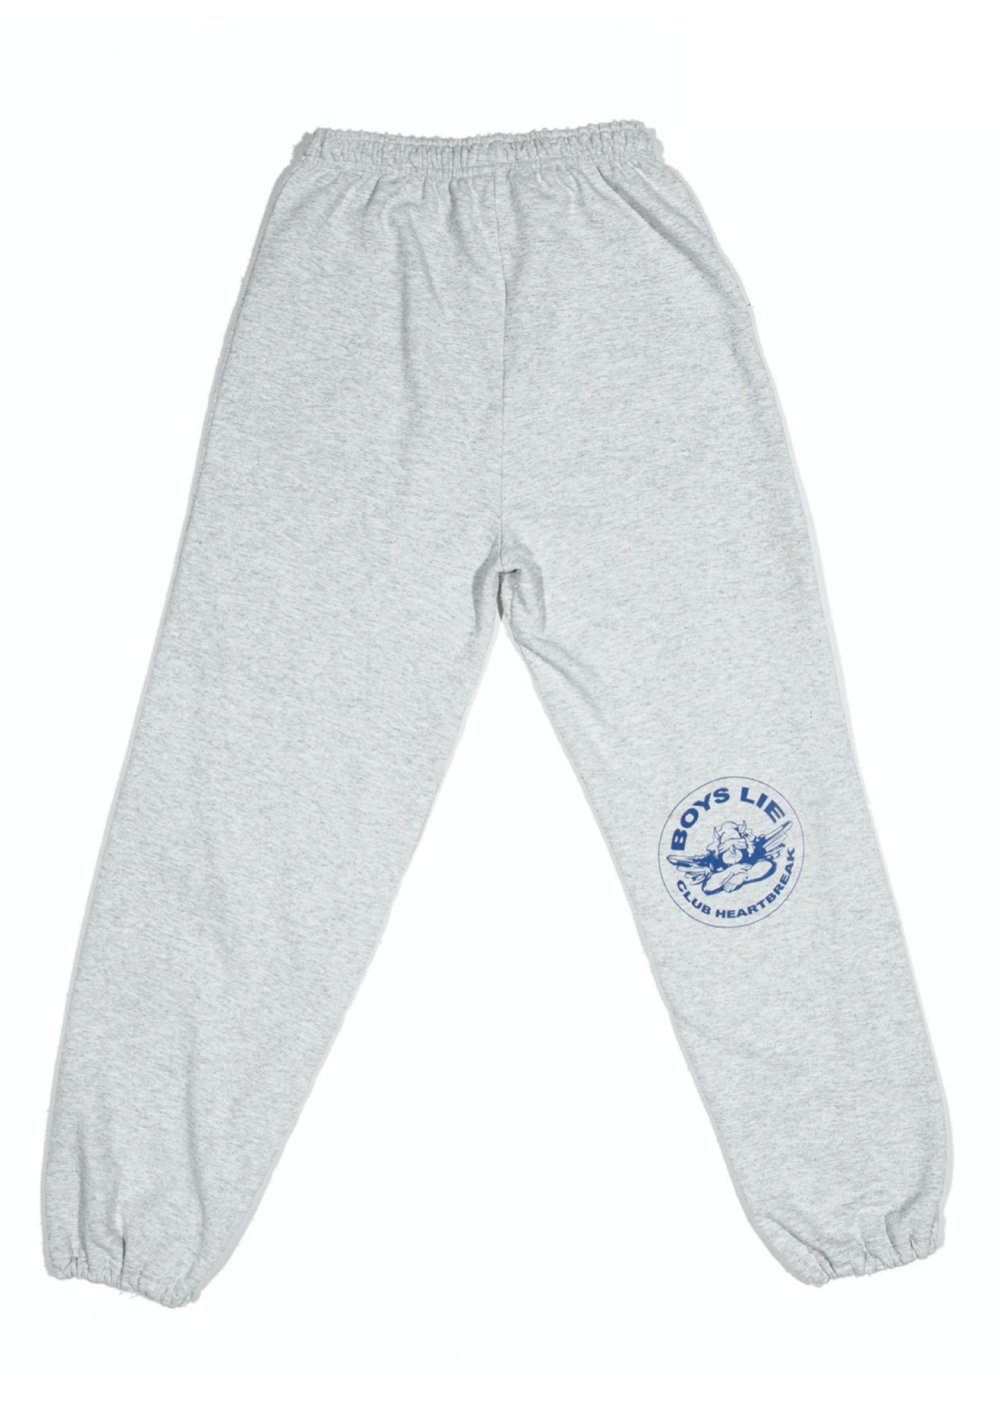 Boys Lie Heartbreak Club Sweatpants